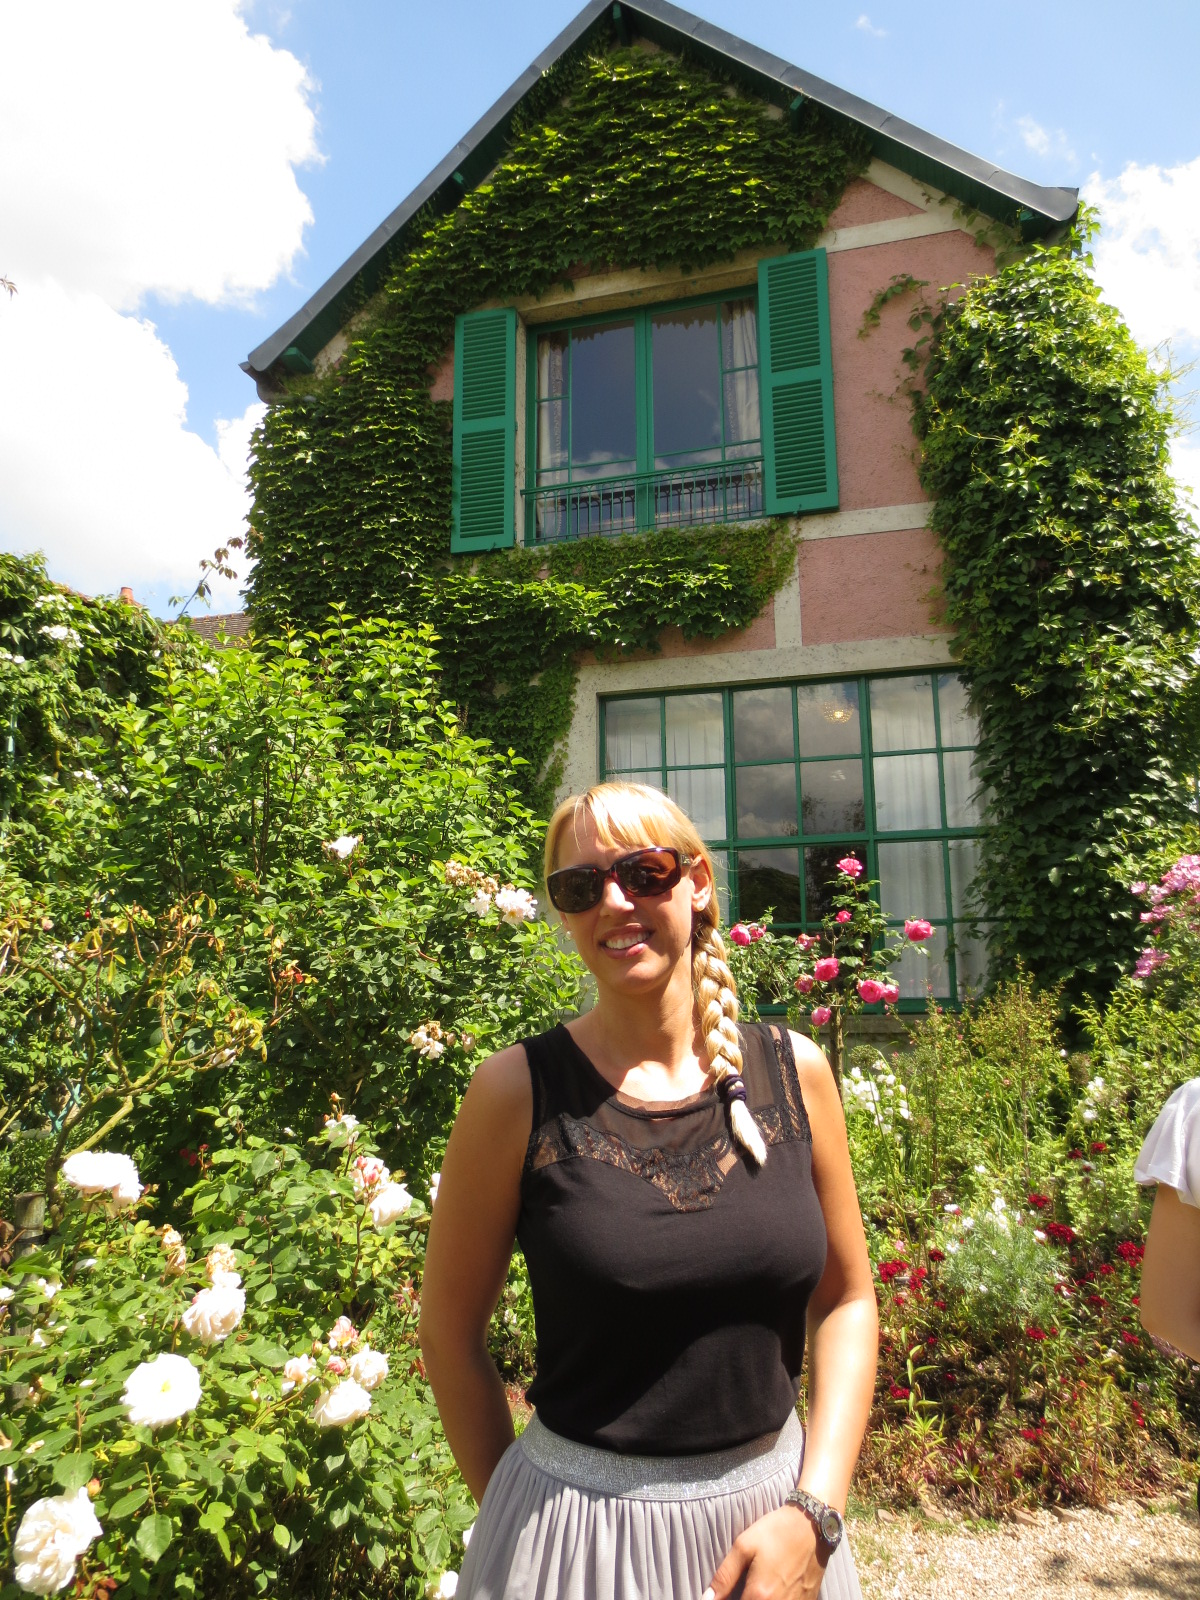 giverny-monet-garden-france-travelgrip- (2)